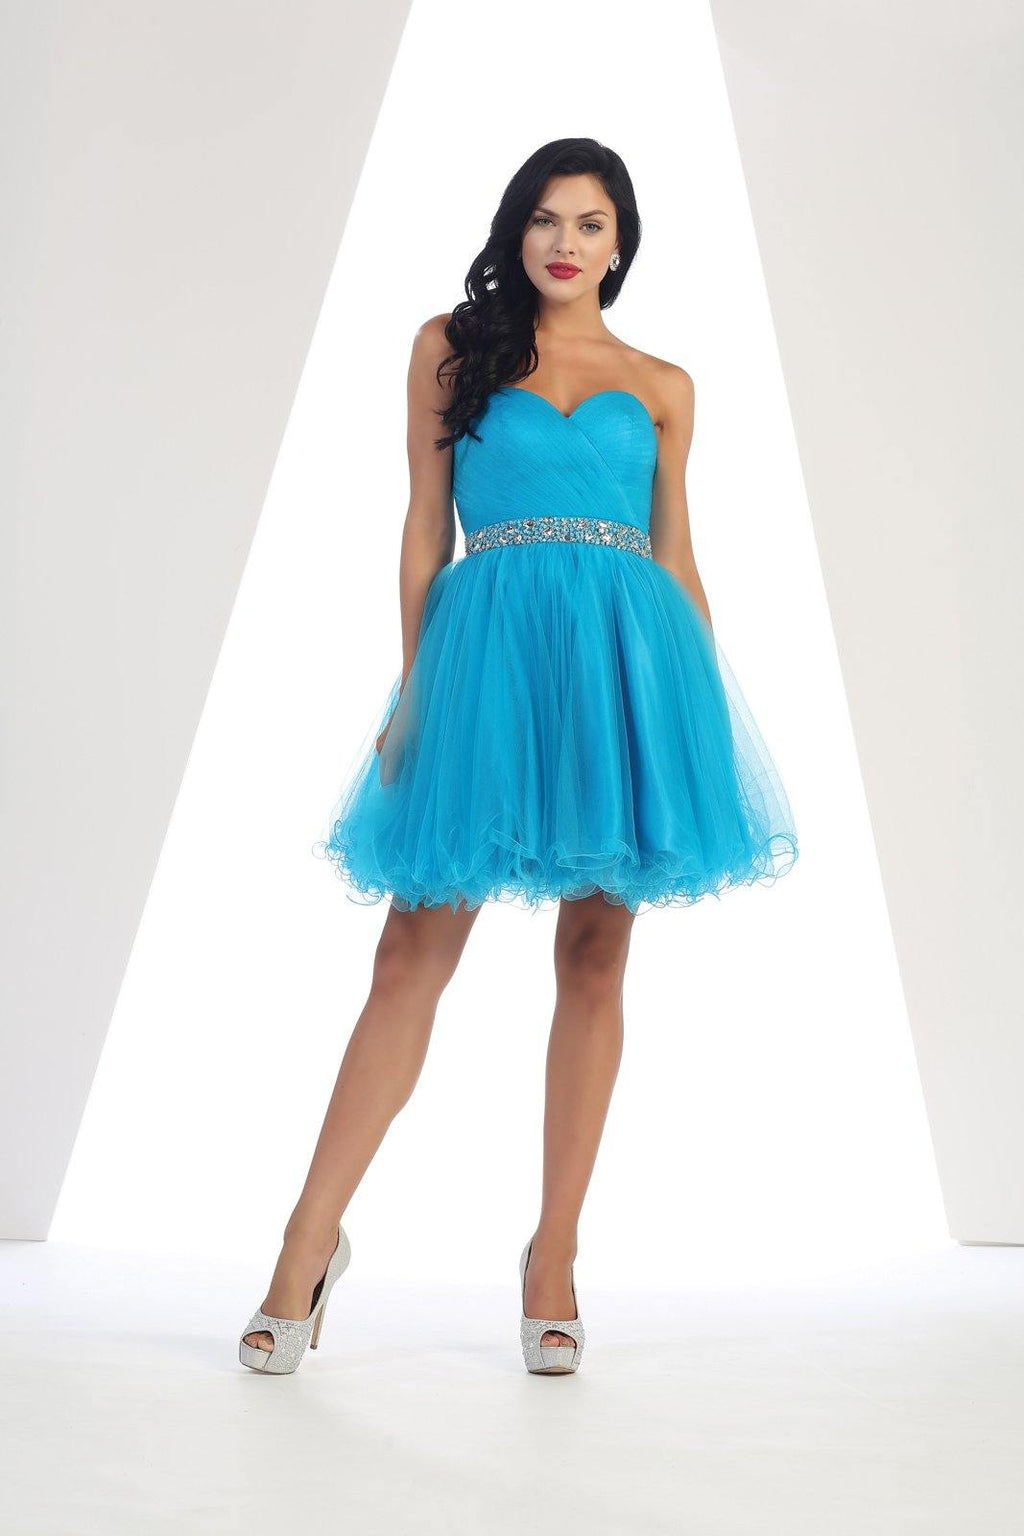 Strapless Short Dress Homecoming - The Dress Outlet Aqua